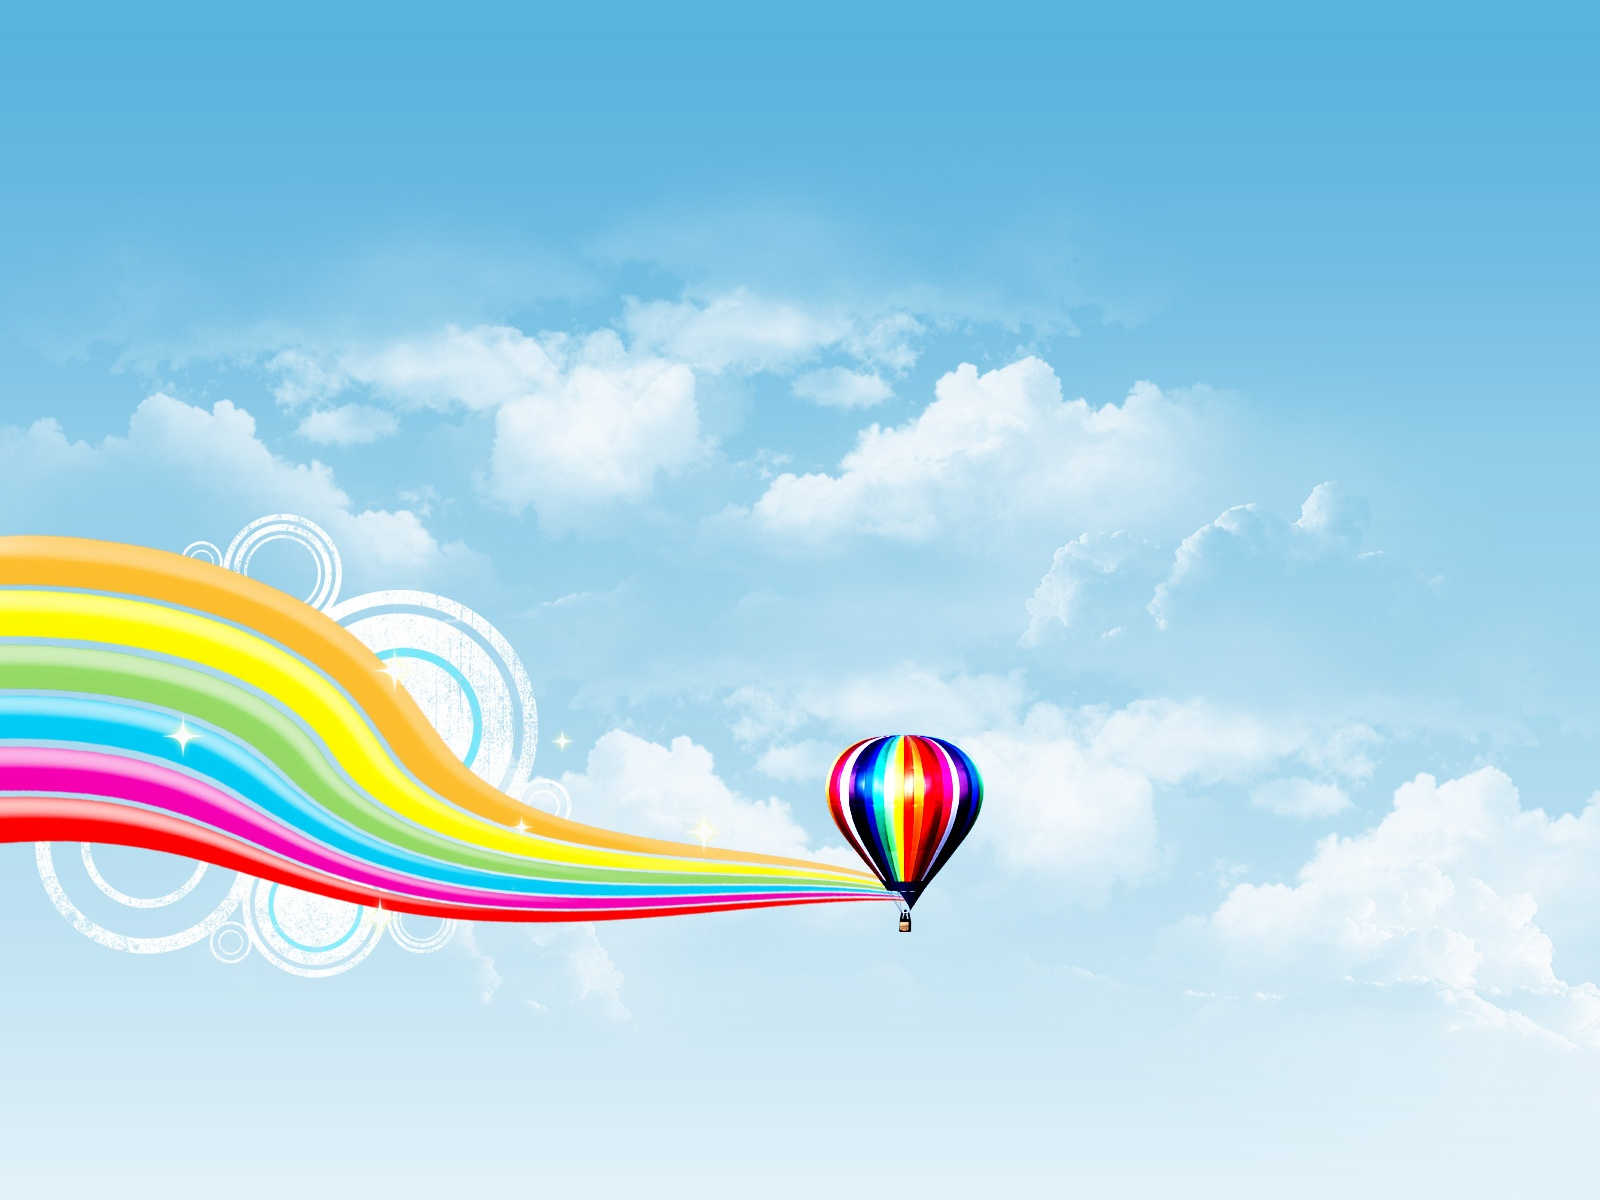 Air Balloon Rainbow Wave - Air Balloon Rainbow Wave